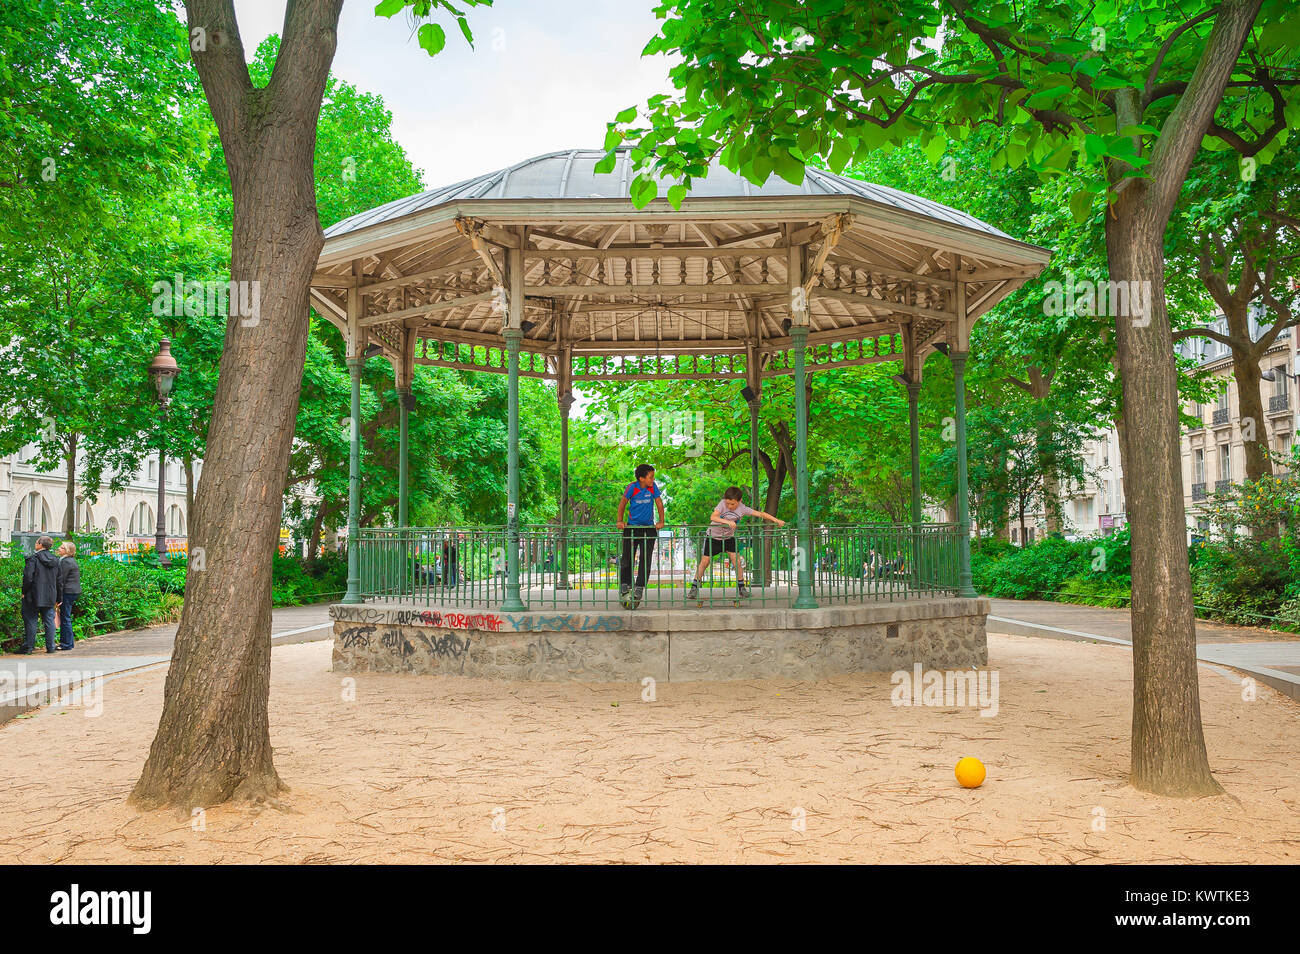 Two boys play together in a bandstand in the Boulevard Richard Lenoir in the Canal Saint-Martin area of central - Stock Image